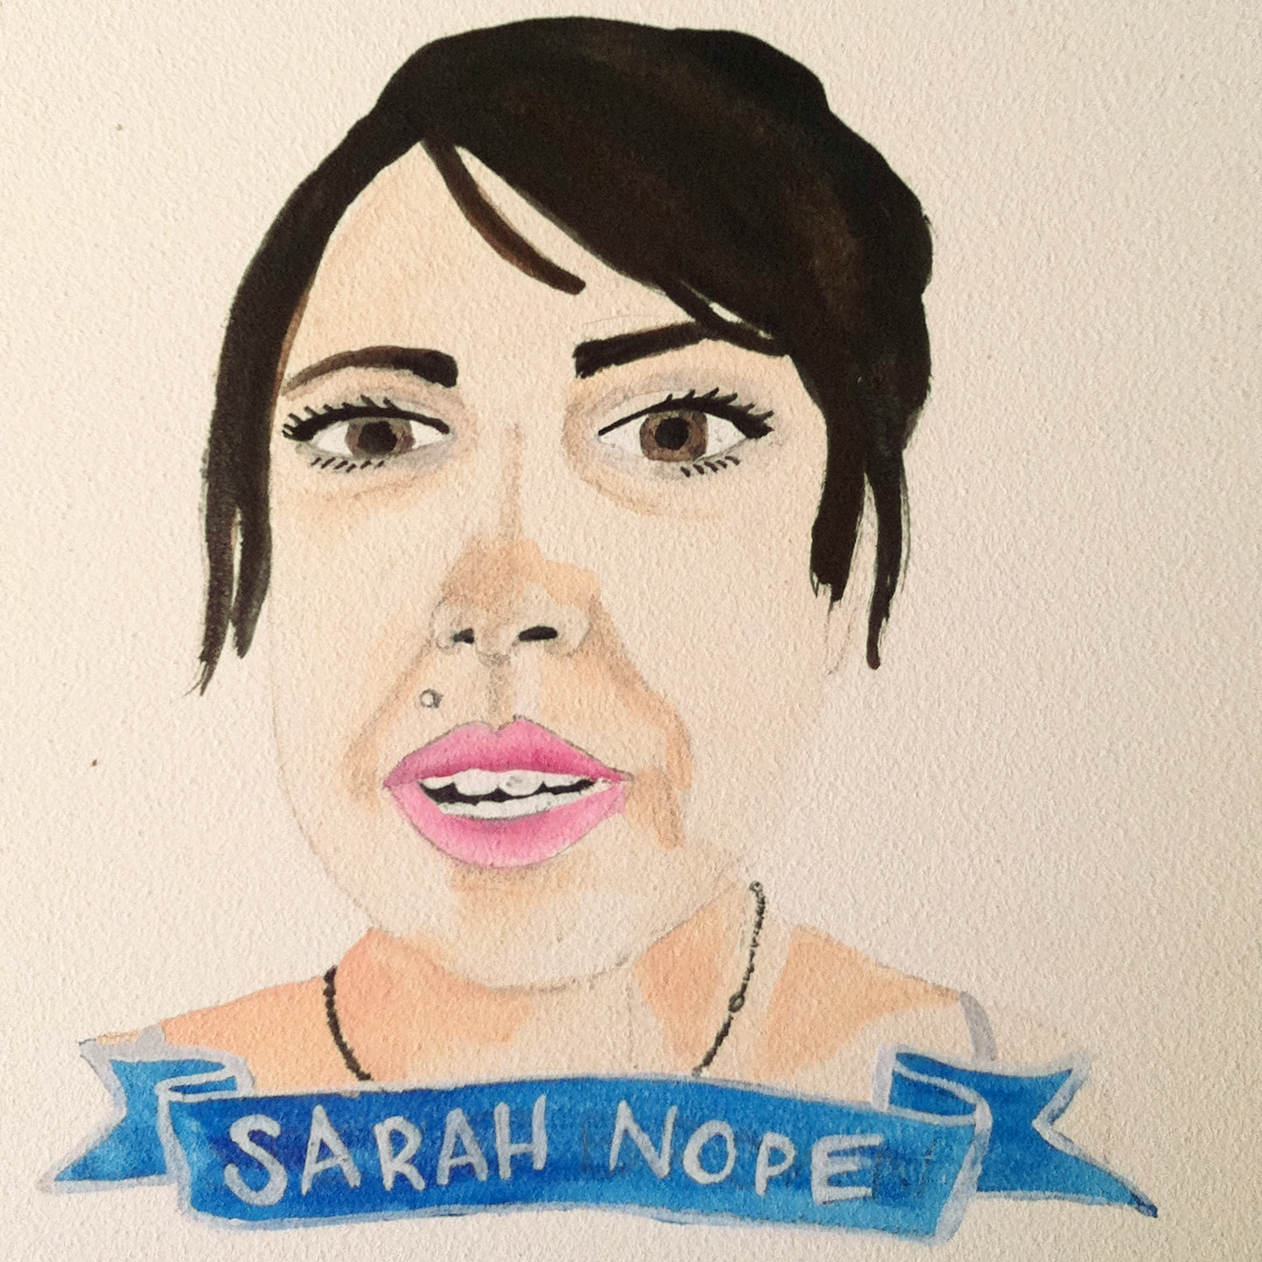 Talent Loves Company at Barbara Archer Gallery: 365 portraits by Lydia Walls - Sarah Nope